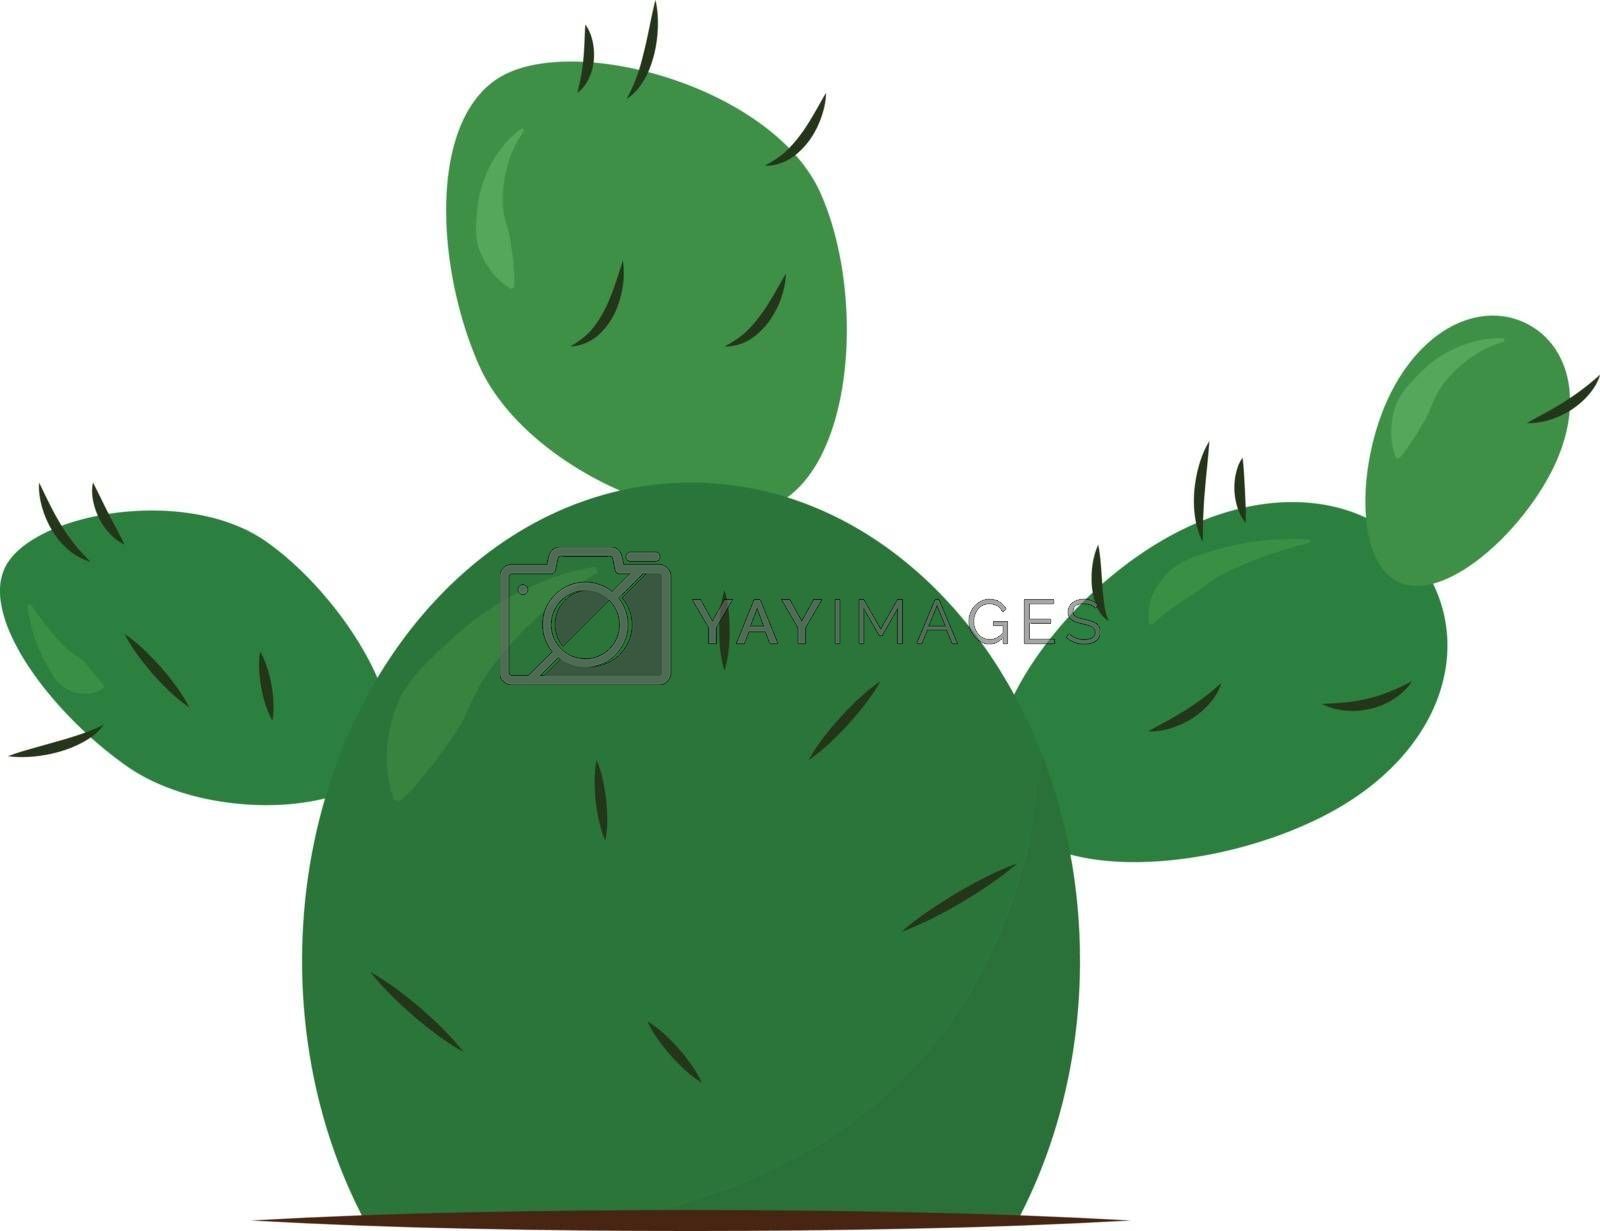 Green cactus, illustration, vector on white background.